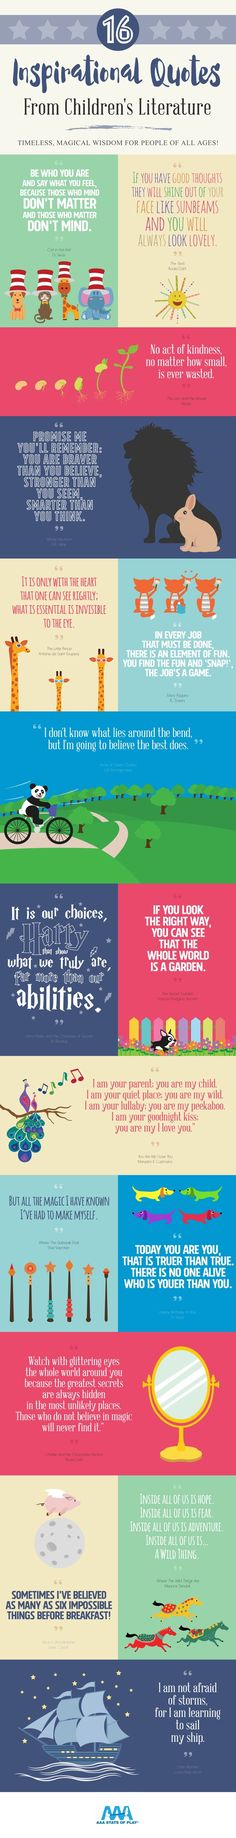 16 inspirational quotes from children's books (infographic)